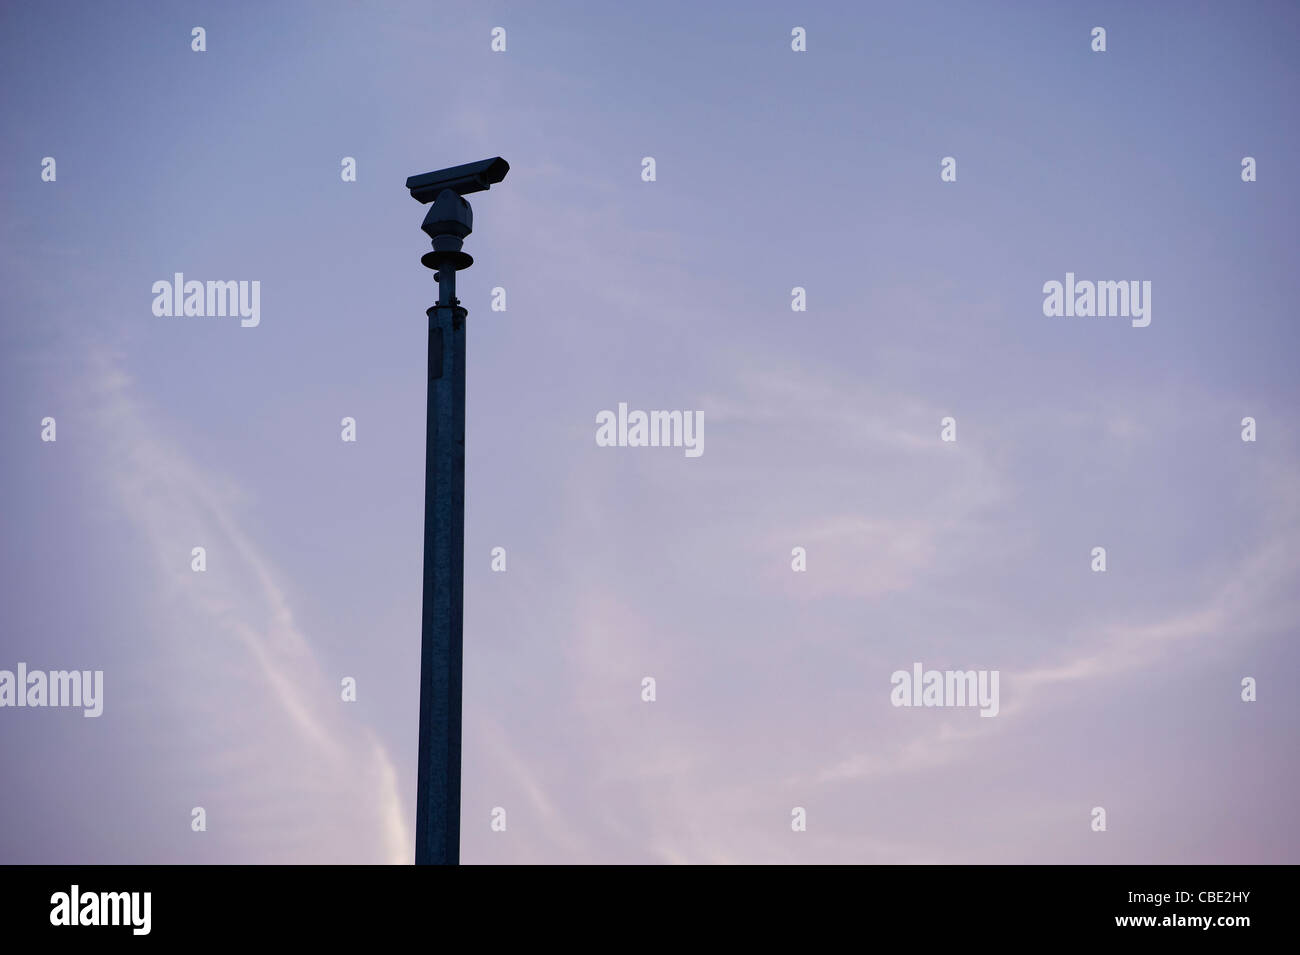 CCTV traffic monitoring camera Stock Photo